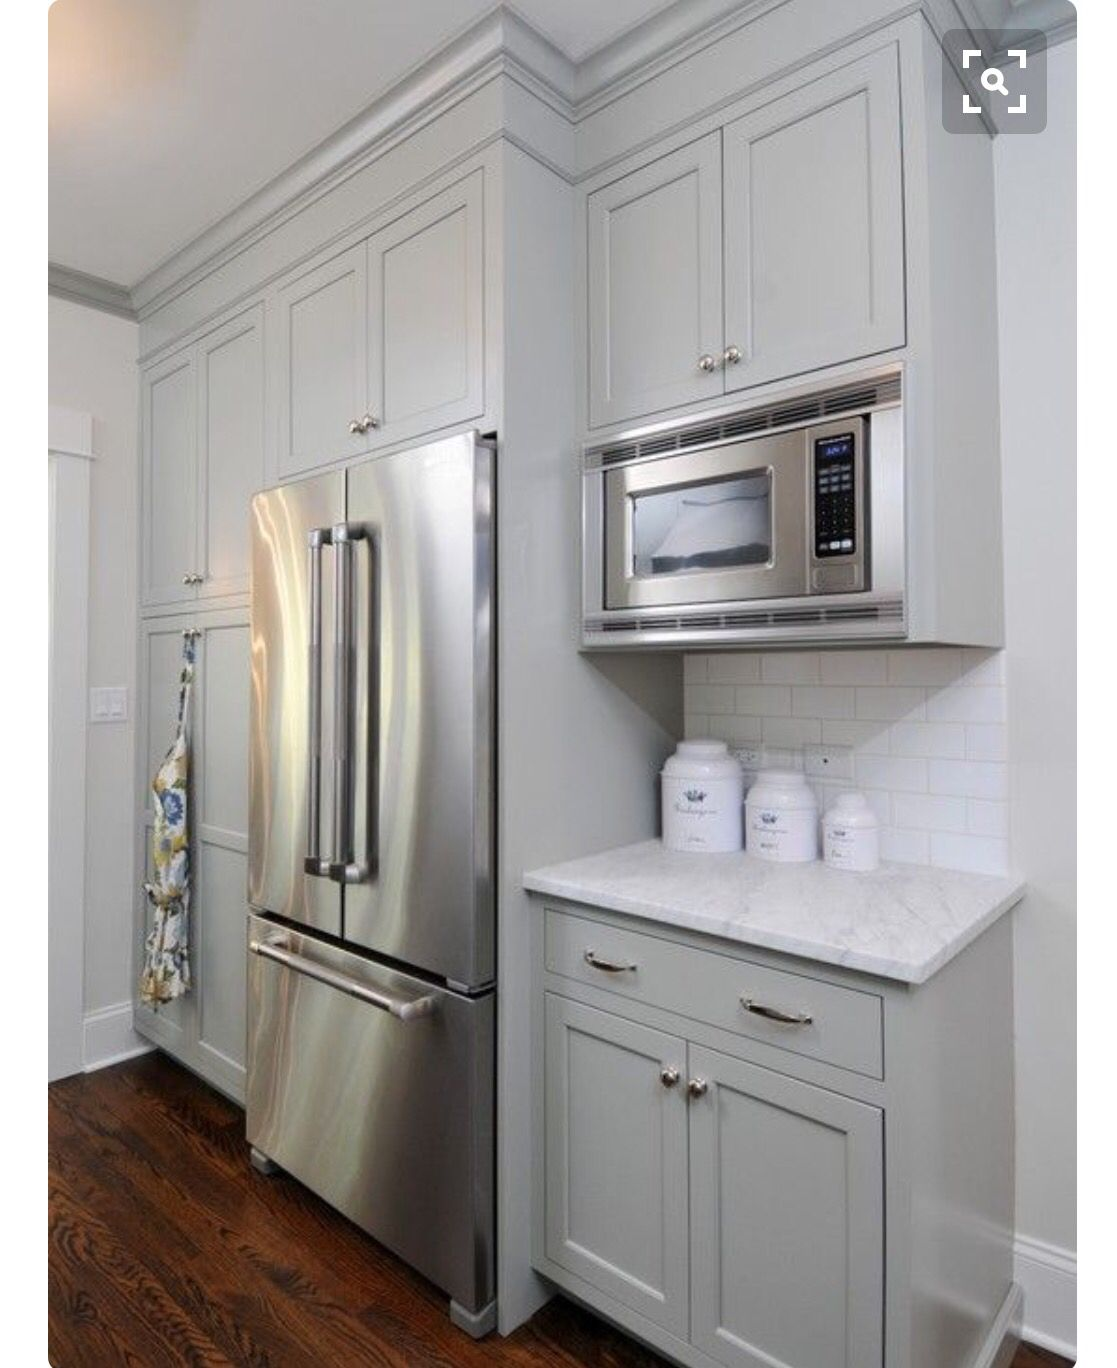 Swell Microwave Above Coffee Bar Kitchen Shaker Kitchen Download Free Architecture Designs Grimeyleaguecom